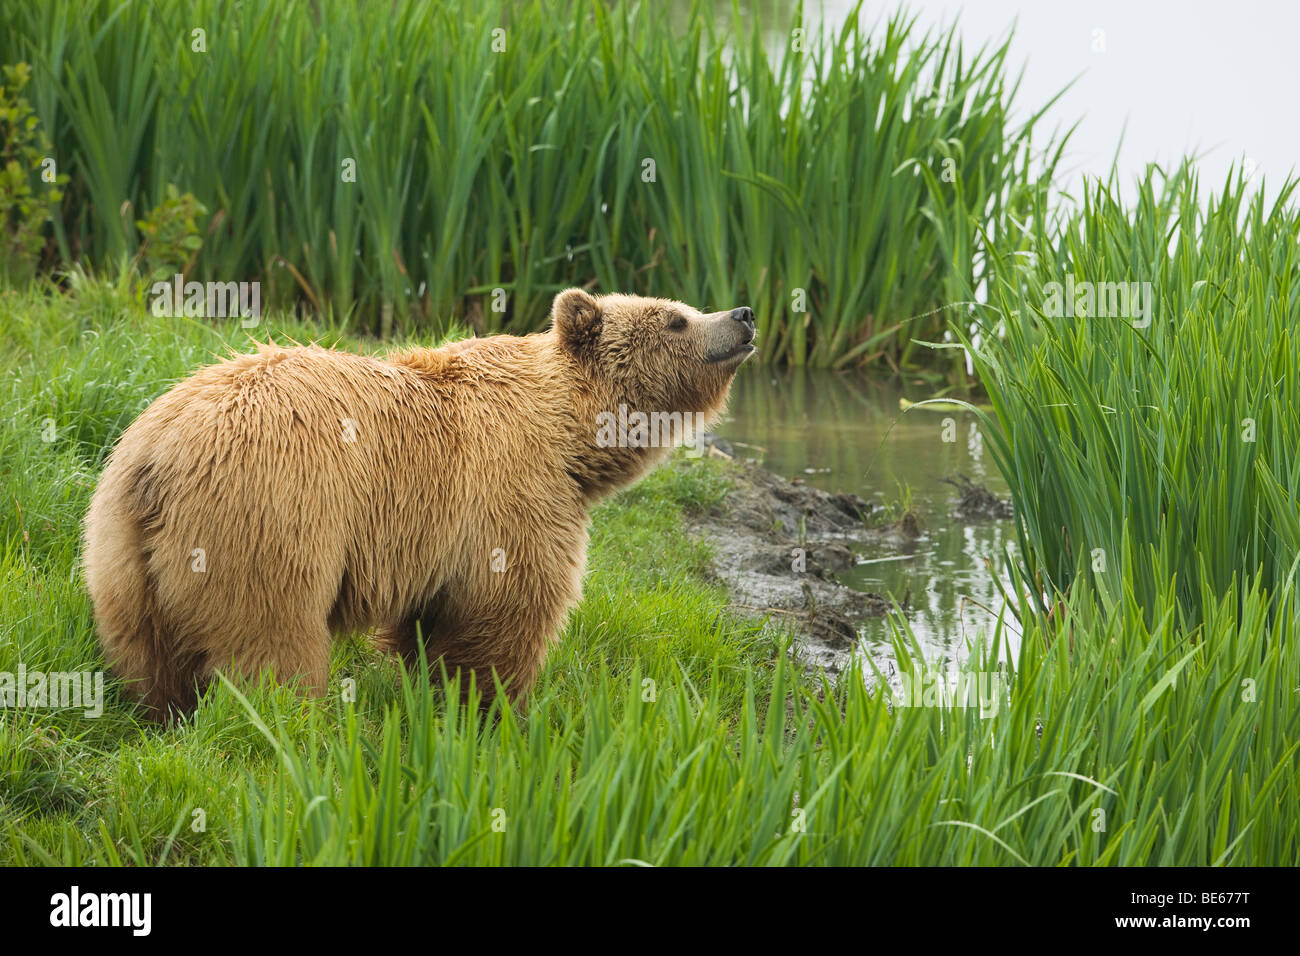 European Brown Bear (Ursus arctos) standing at the waters edge while sniffing the air. Stock Photo